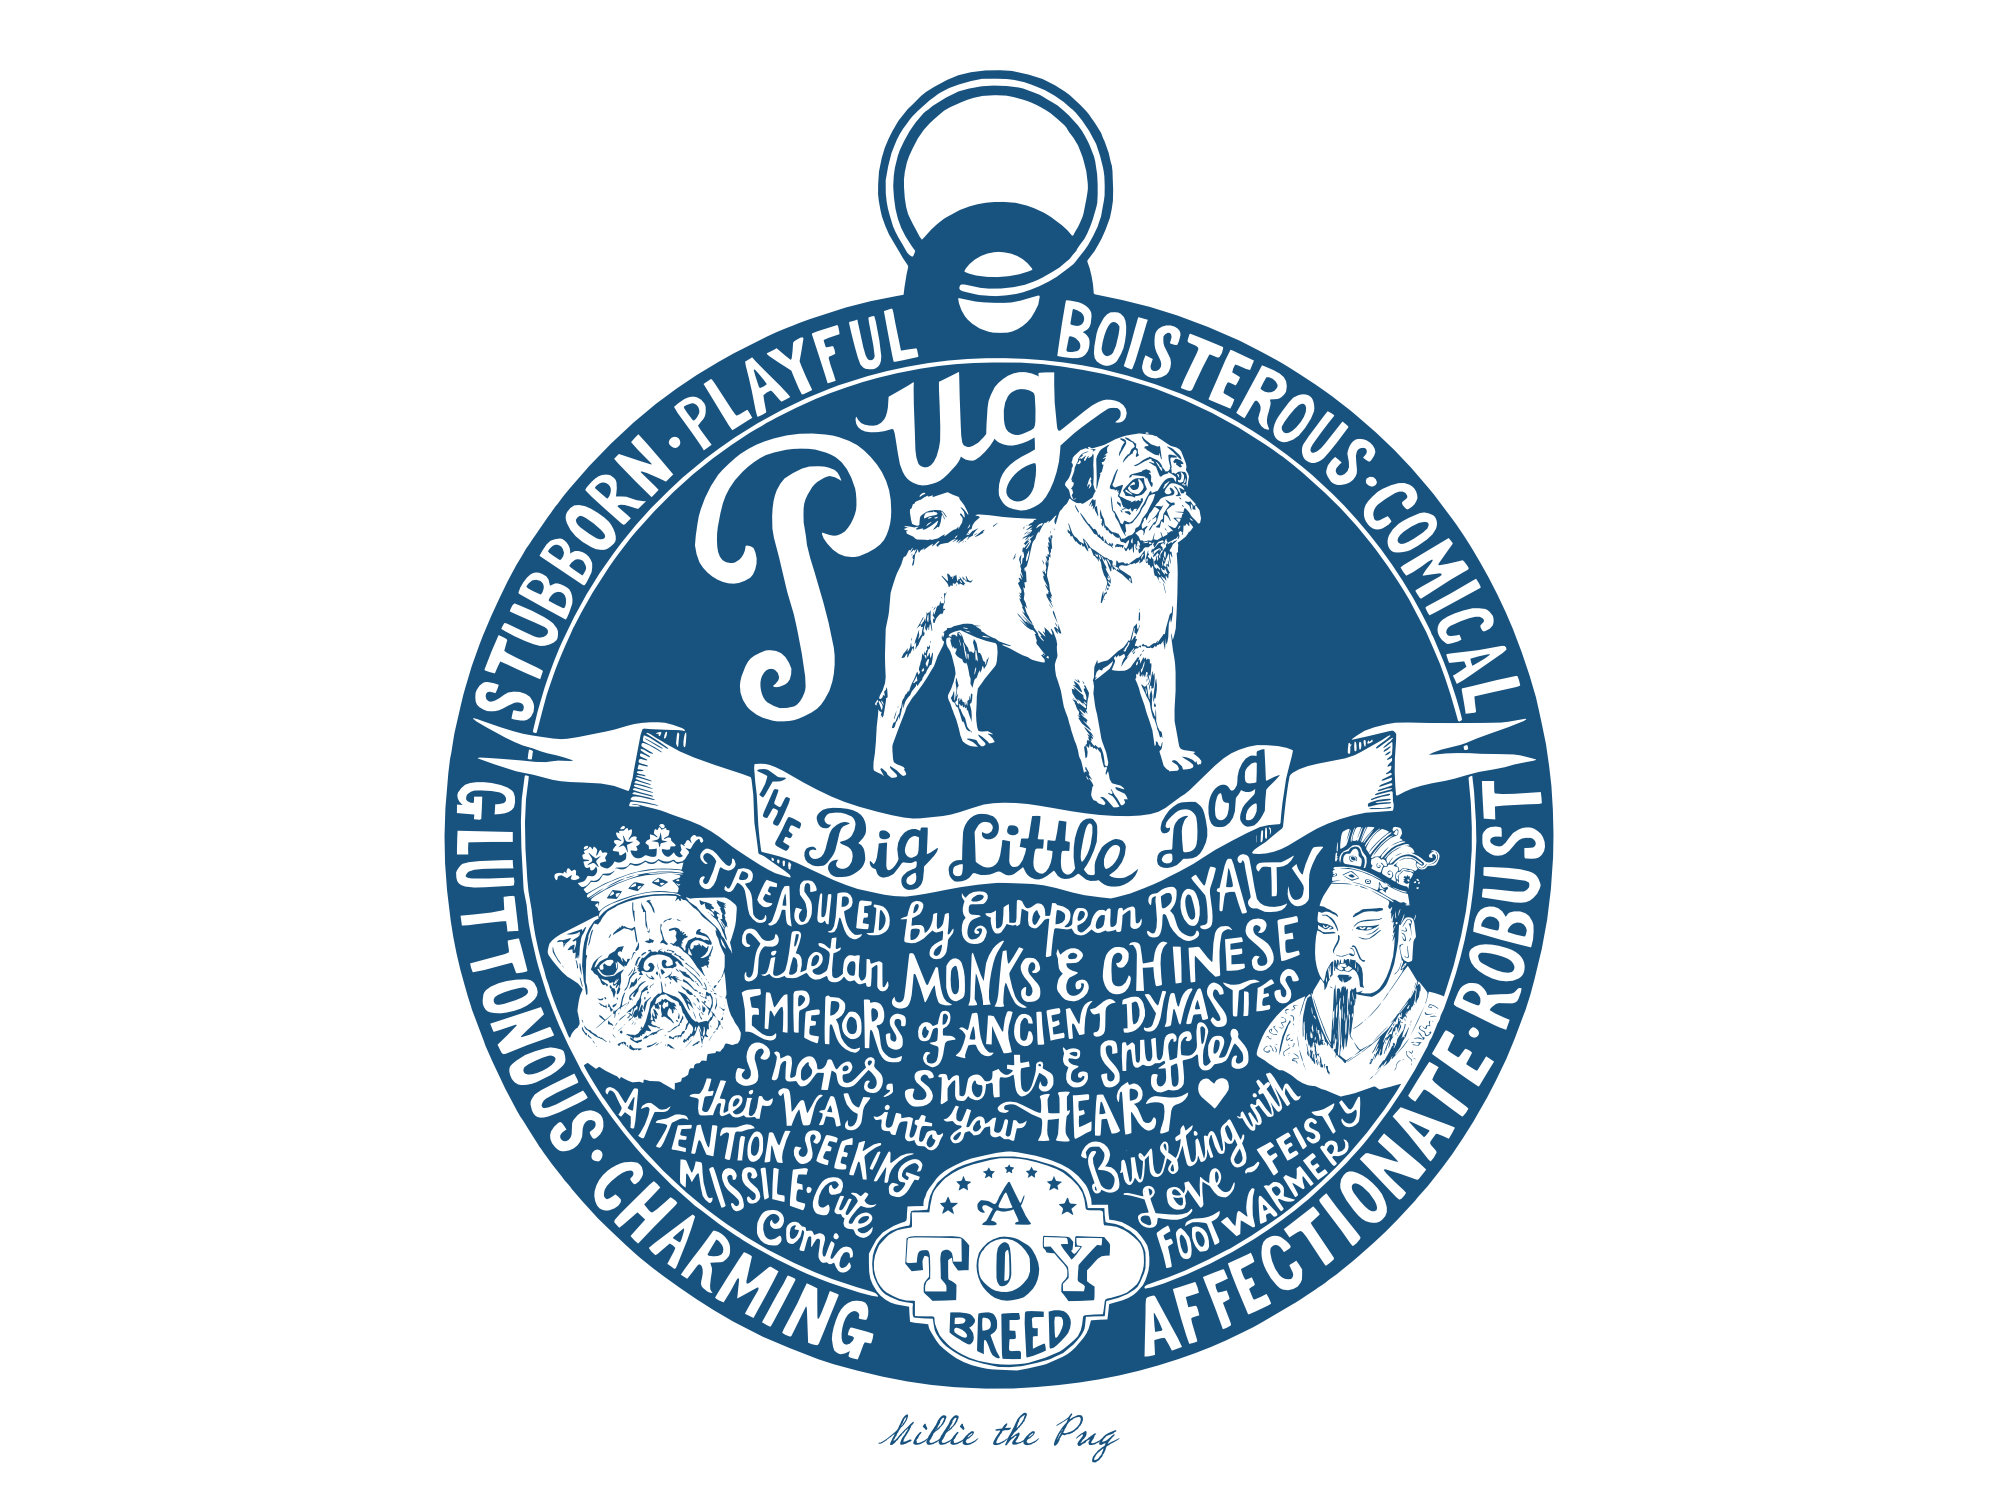 Pug prints - Hand lettering & Illustration by Debbie Kendall